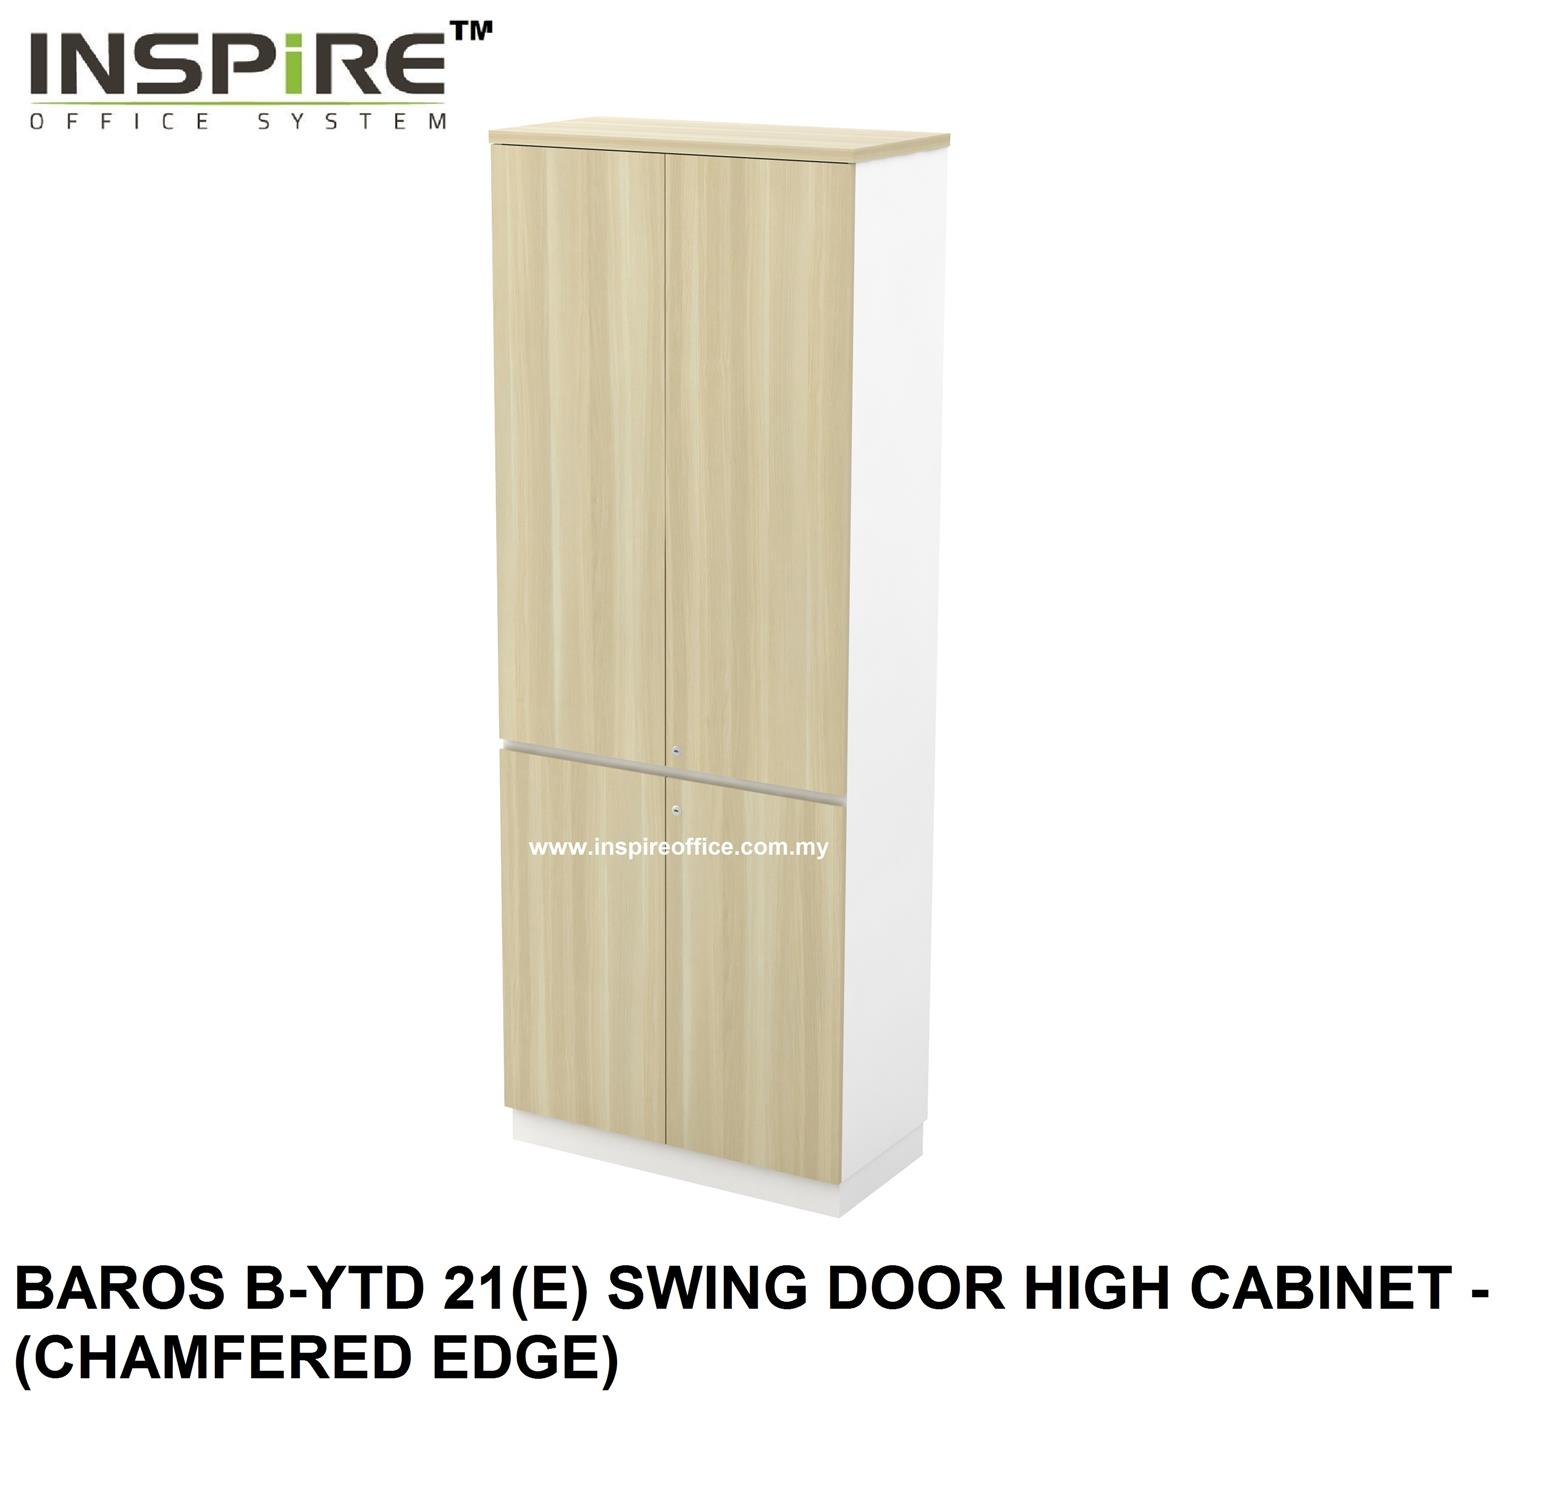 BAROS B-YTD 21(E) SWING DOOR HIGH CABINET - (CHAMFERED EDGE)